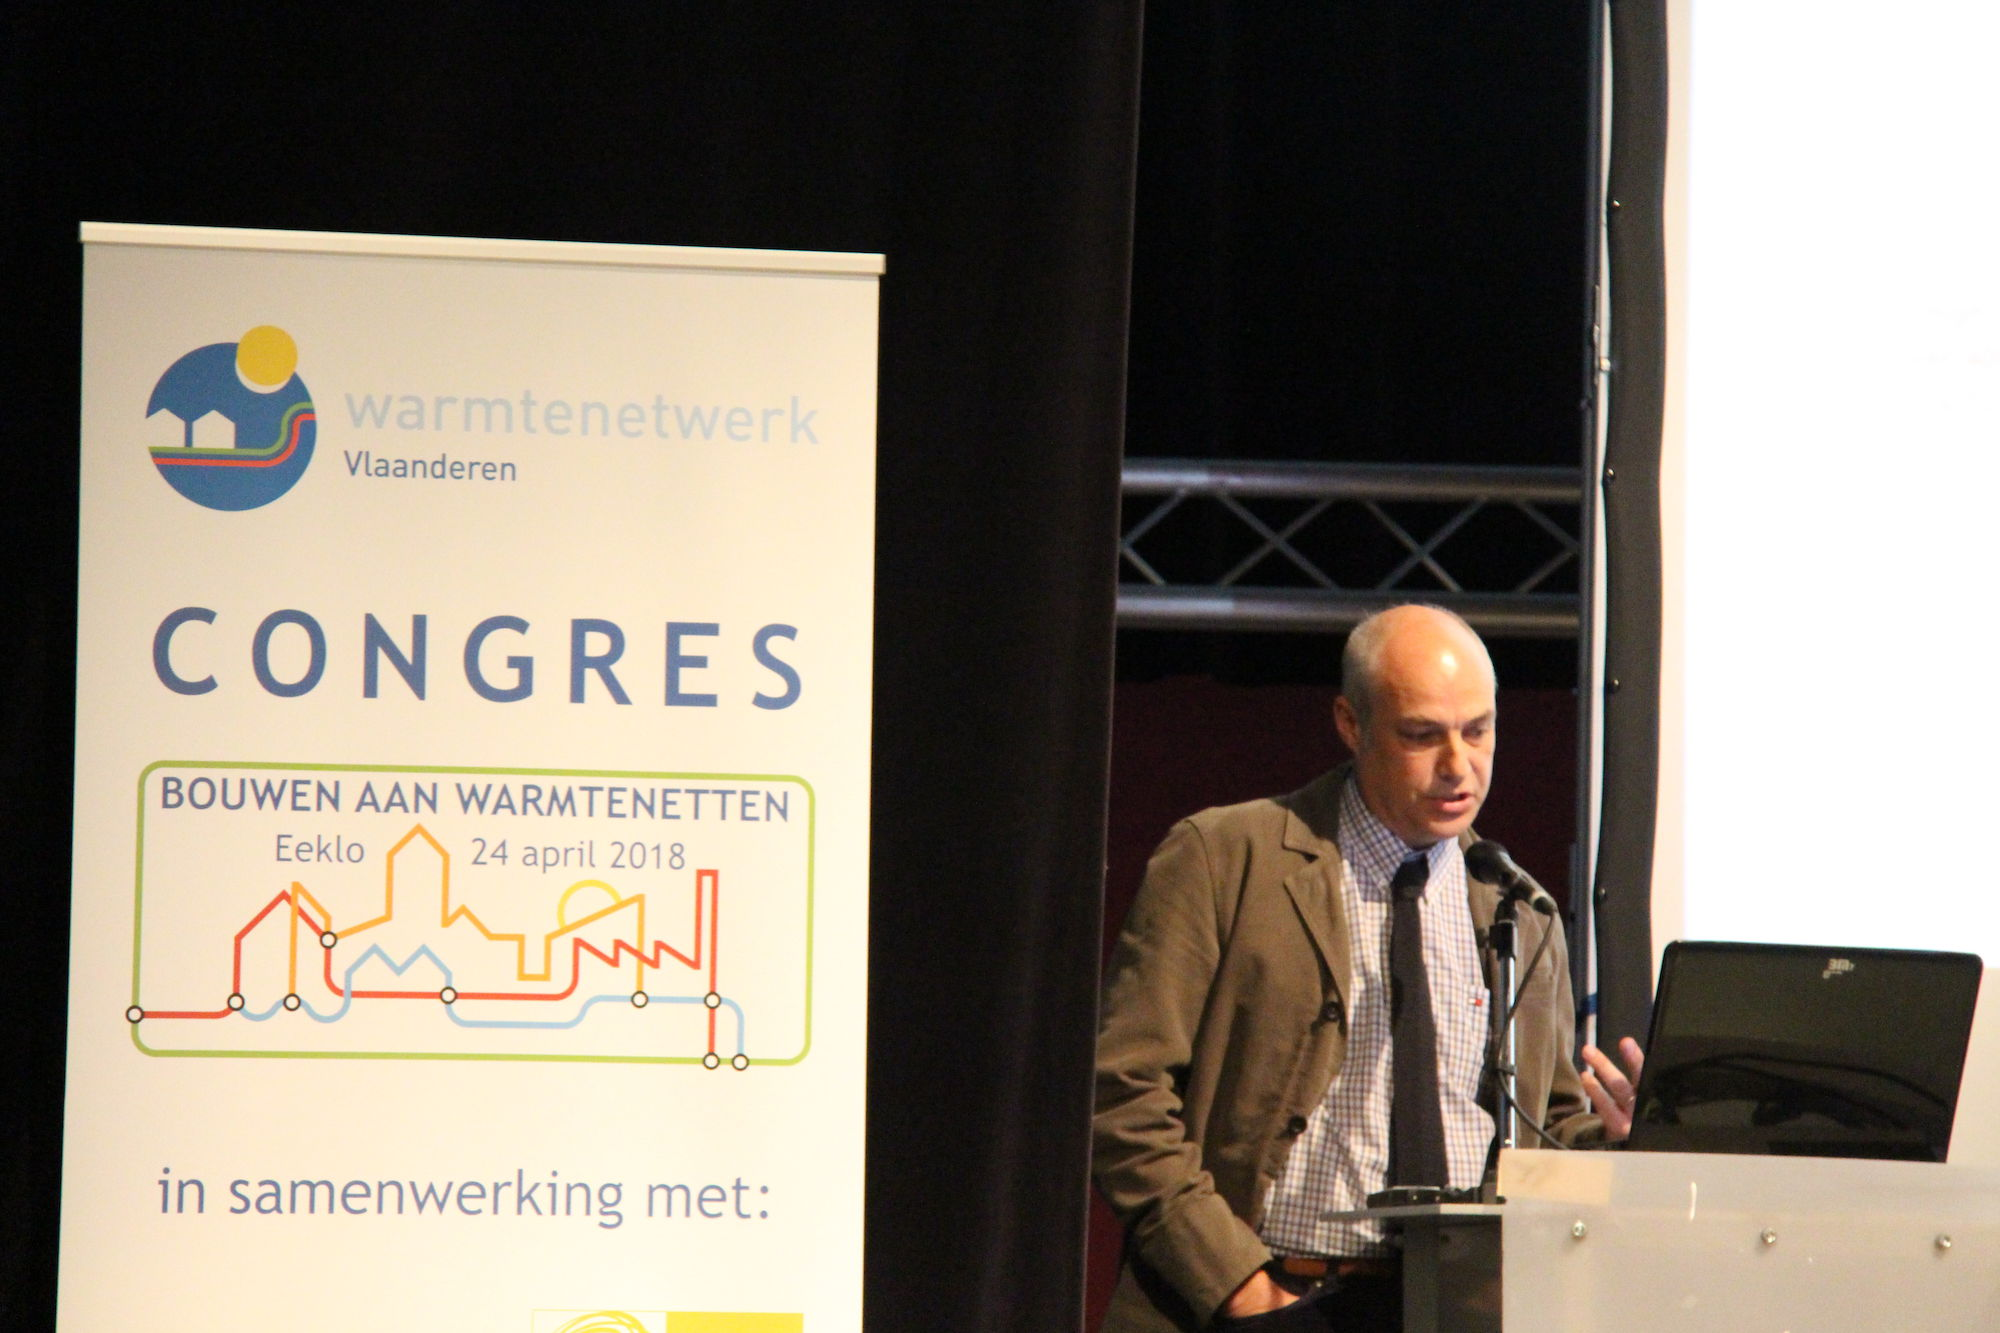 20180424_warmtecongres_VM_00077.JPG